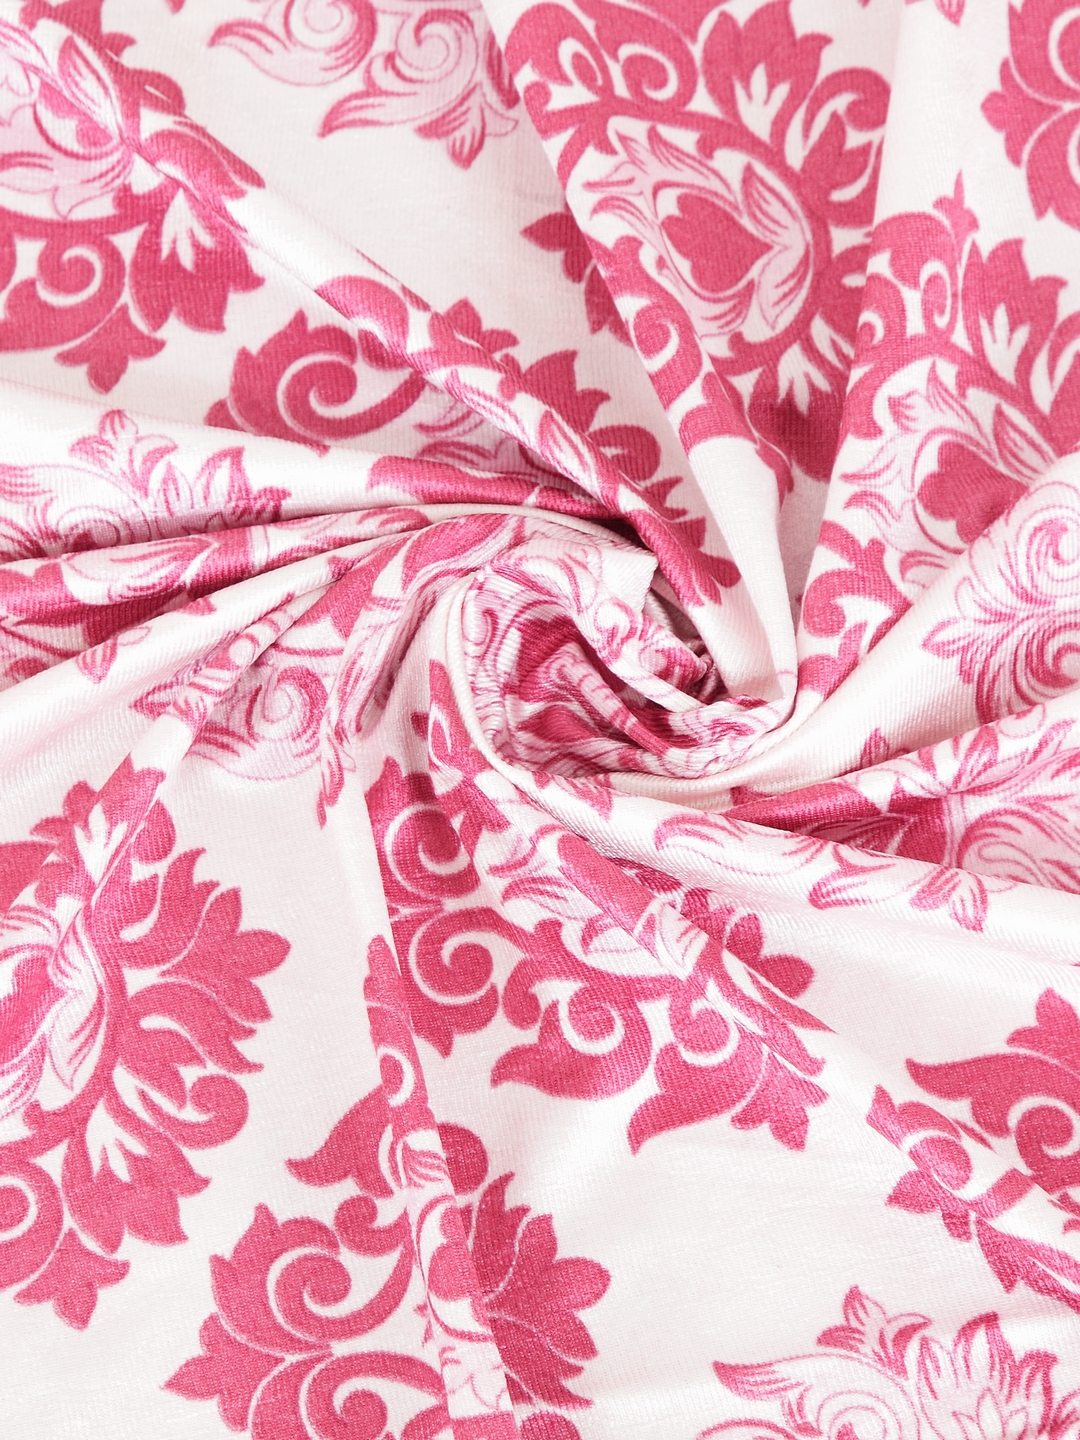 Cortina - Pack of 2 Decorative, Fancy, Eyelet Door Curtain set (210 x 115 cm), All over Damask pattern, Pink, Fringe and tassle detail